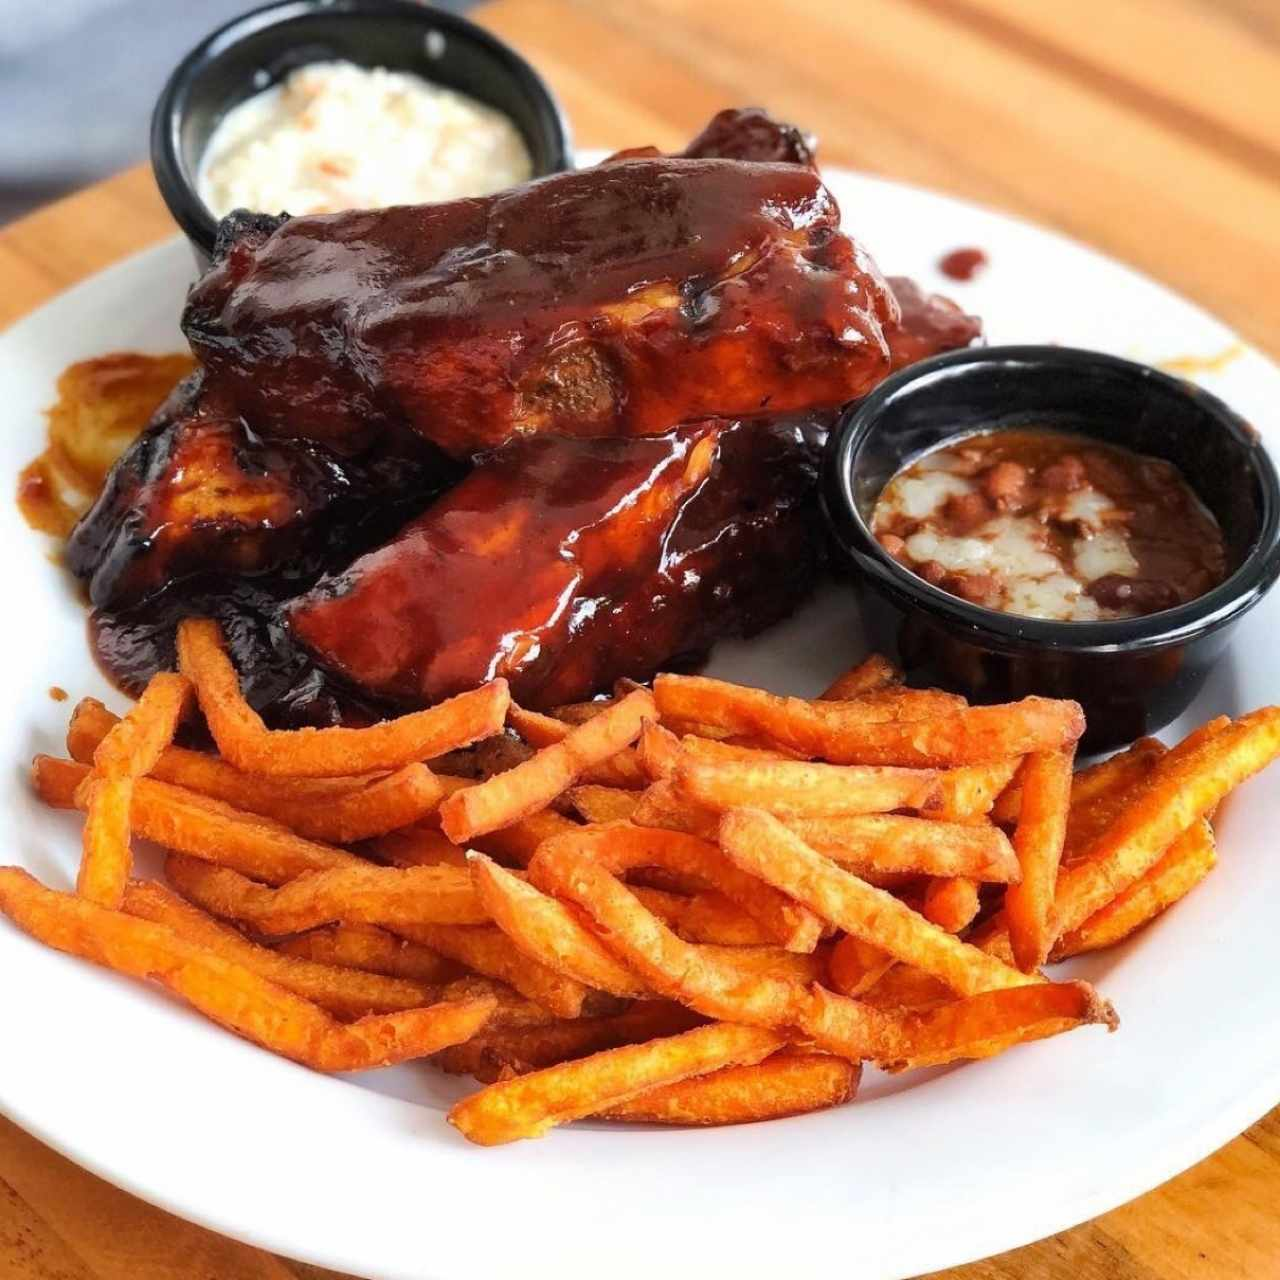 HOUSE BBQ - FRISCO BBQ RIBS